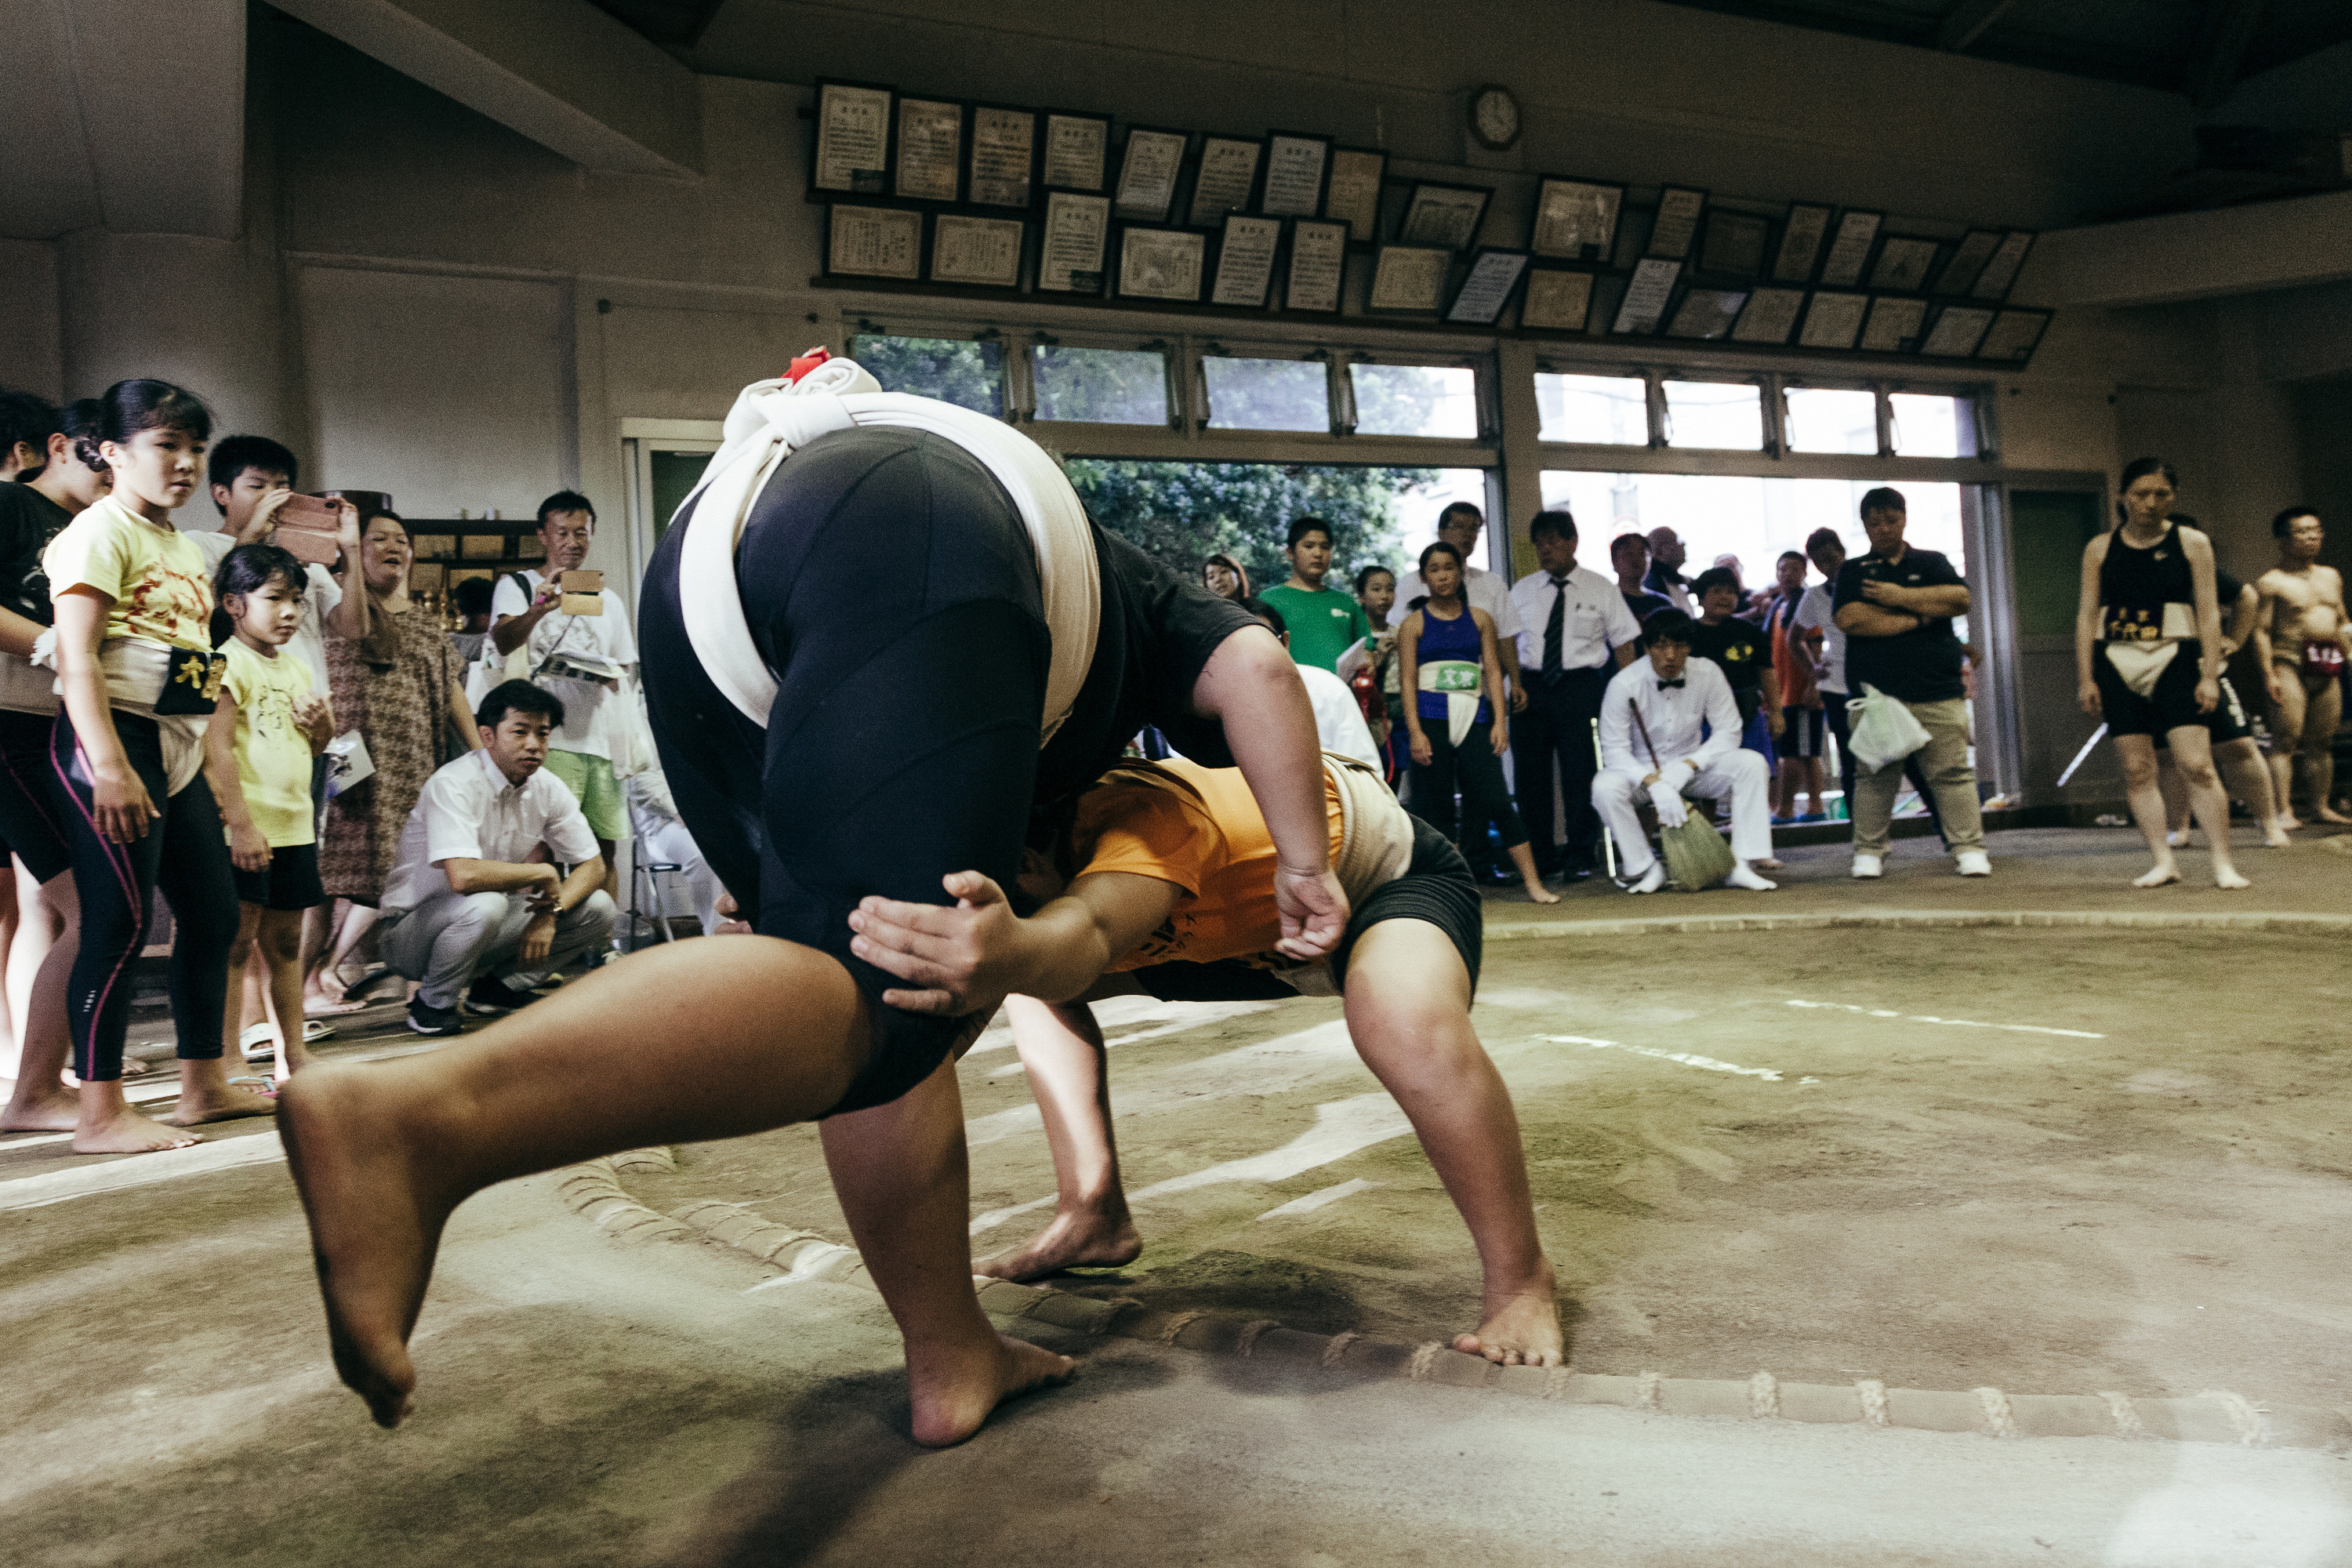 Two young girls fighting in a sumo ring with a crowd around them